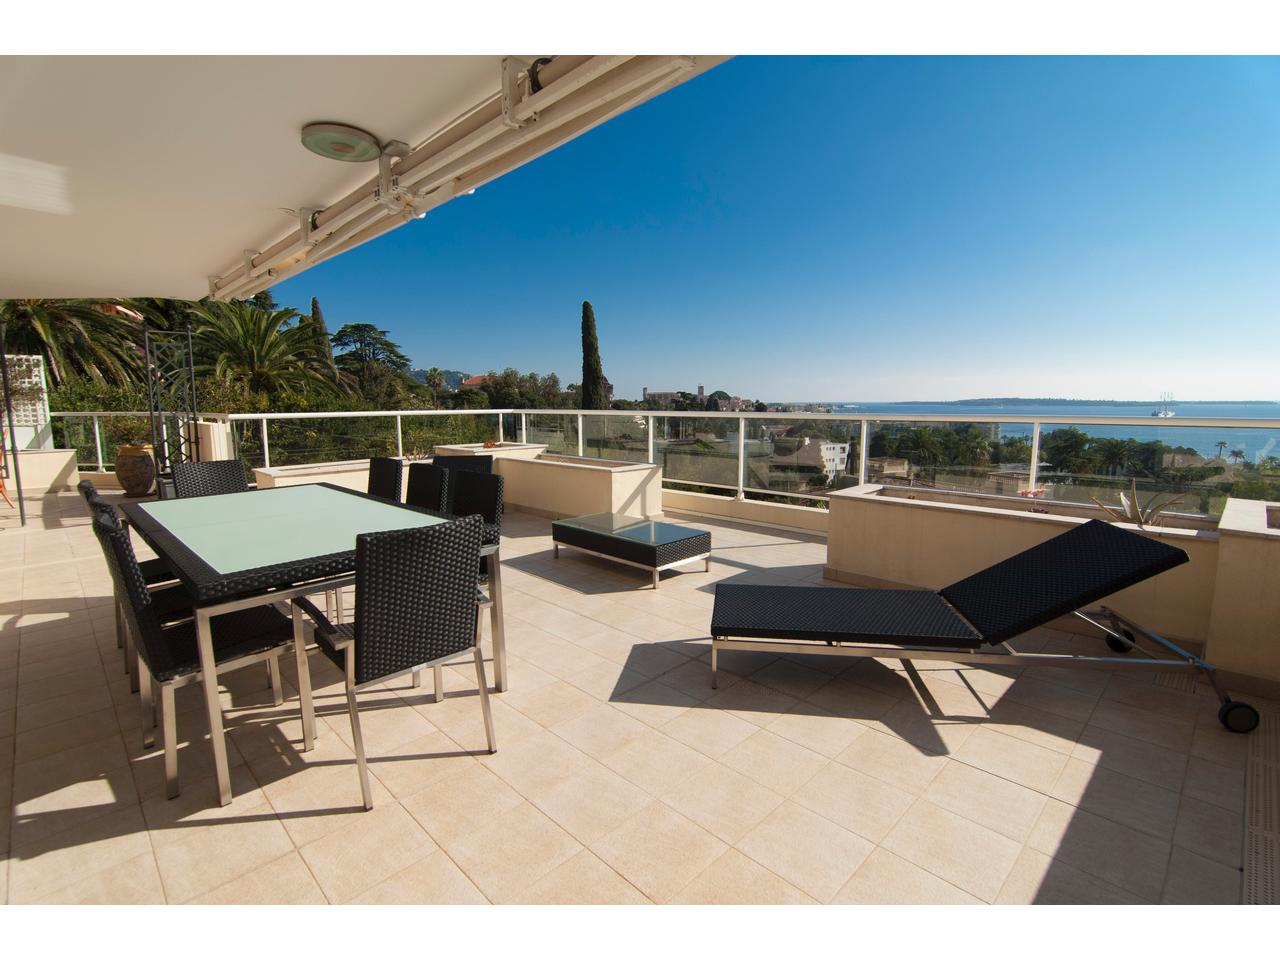 Immobilier nice vue mer appartement cannes 4 pieces etage for Appart hotel france sud